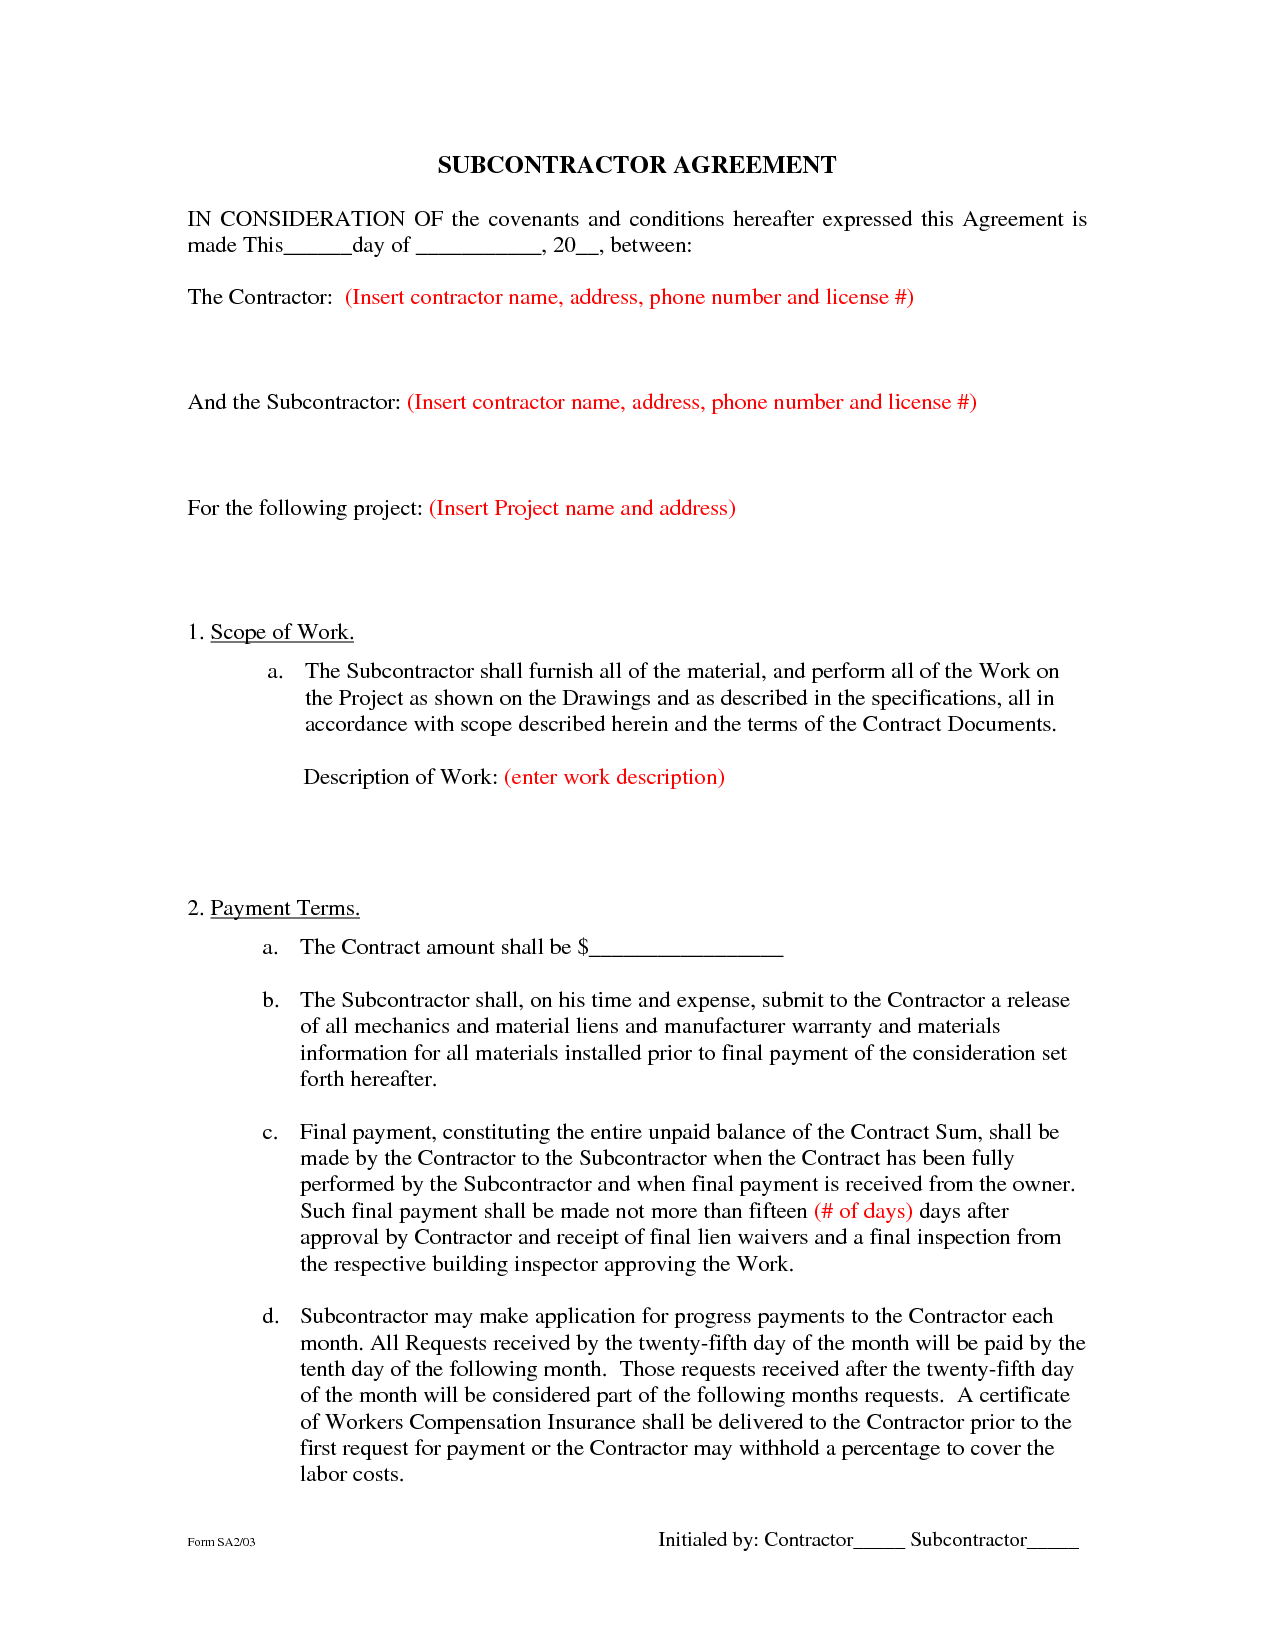 Subcontractor Agreement Form Free Printable Documents